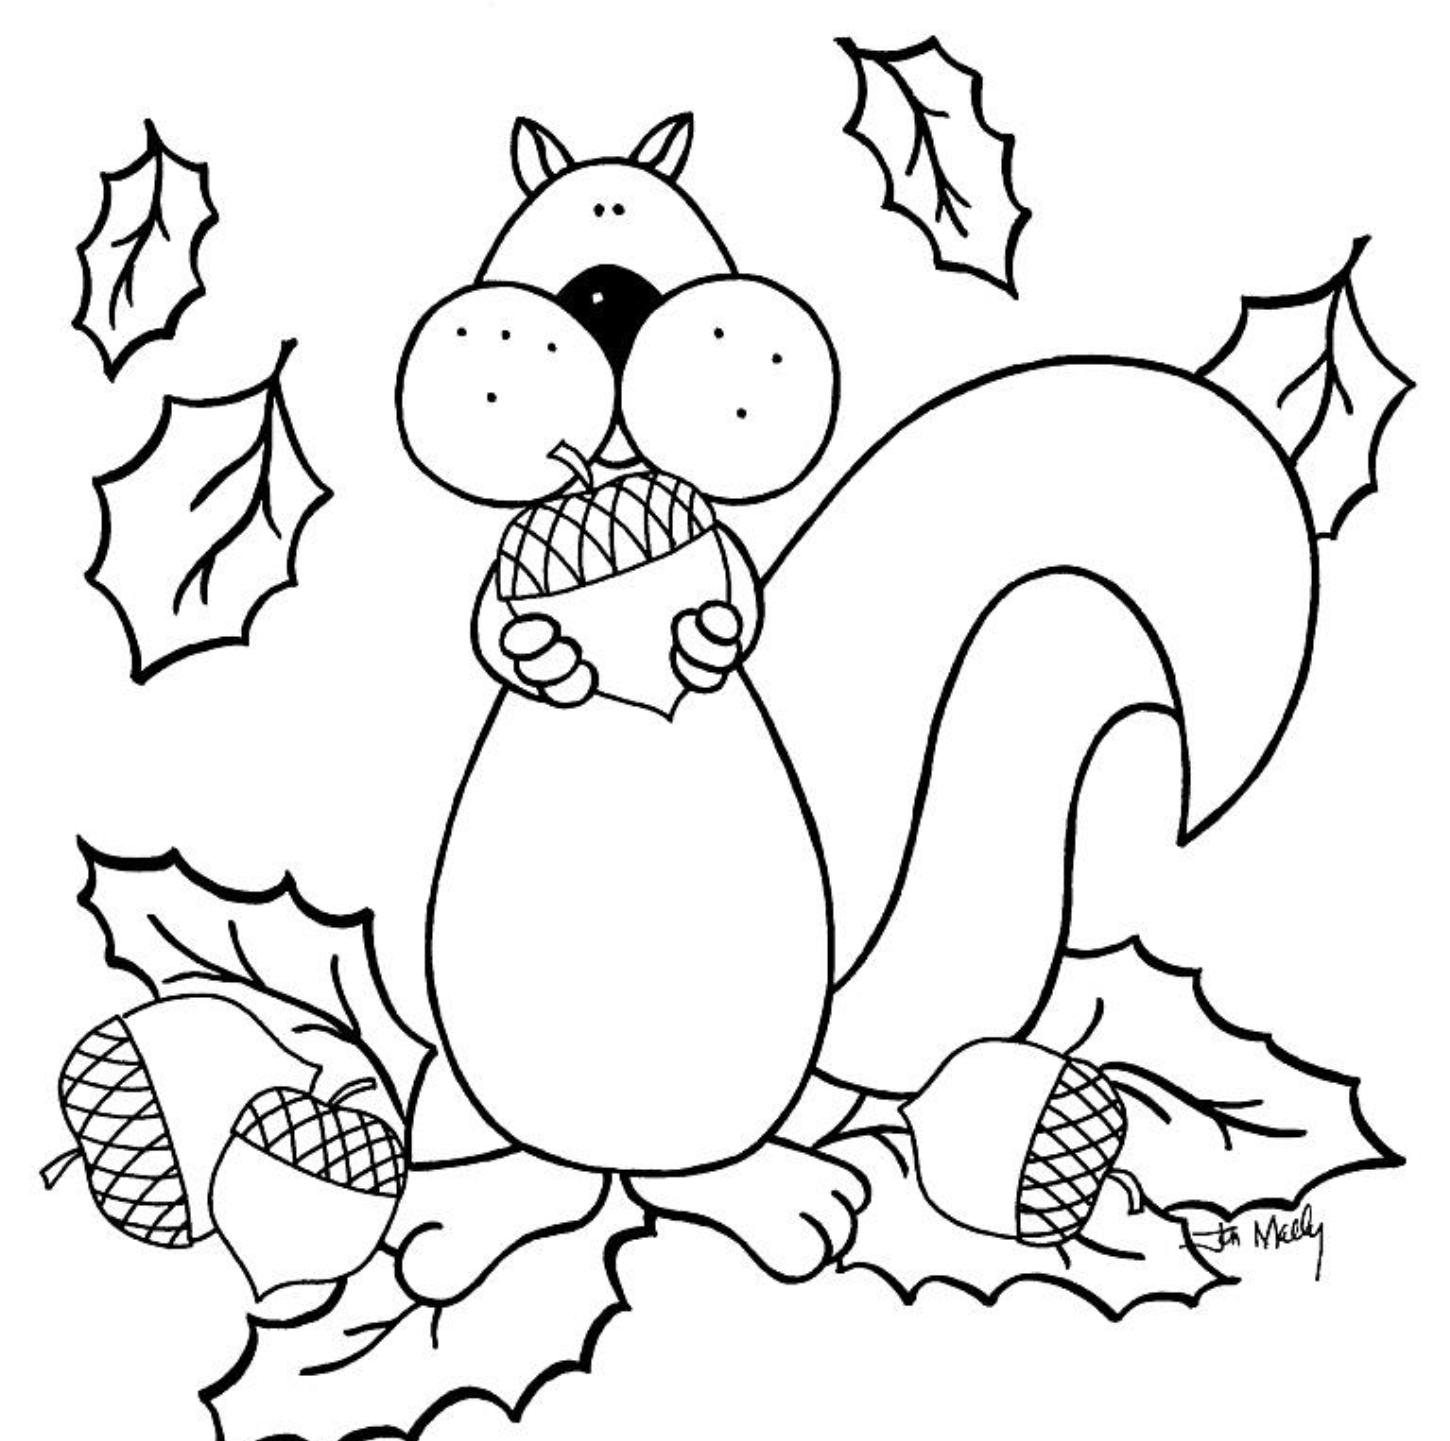 fall coloring pages for preschoolers fall coloring pages 2018 dr odd fall for preschoolers coloring pages